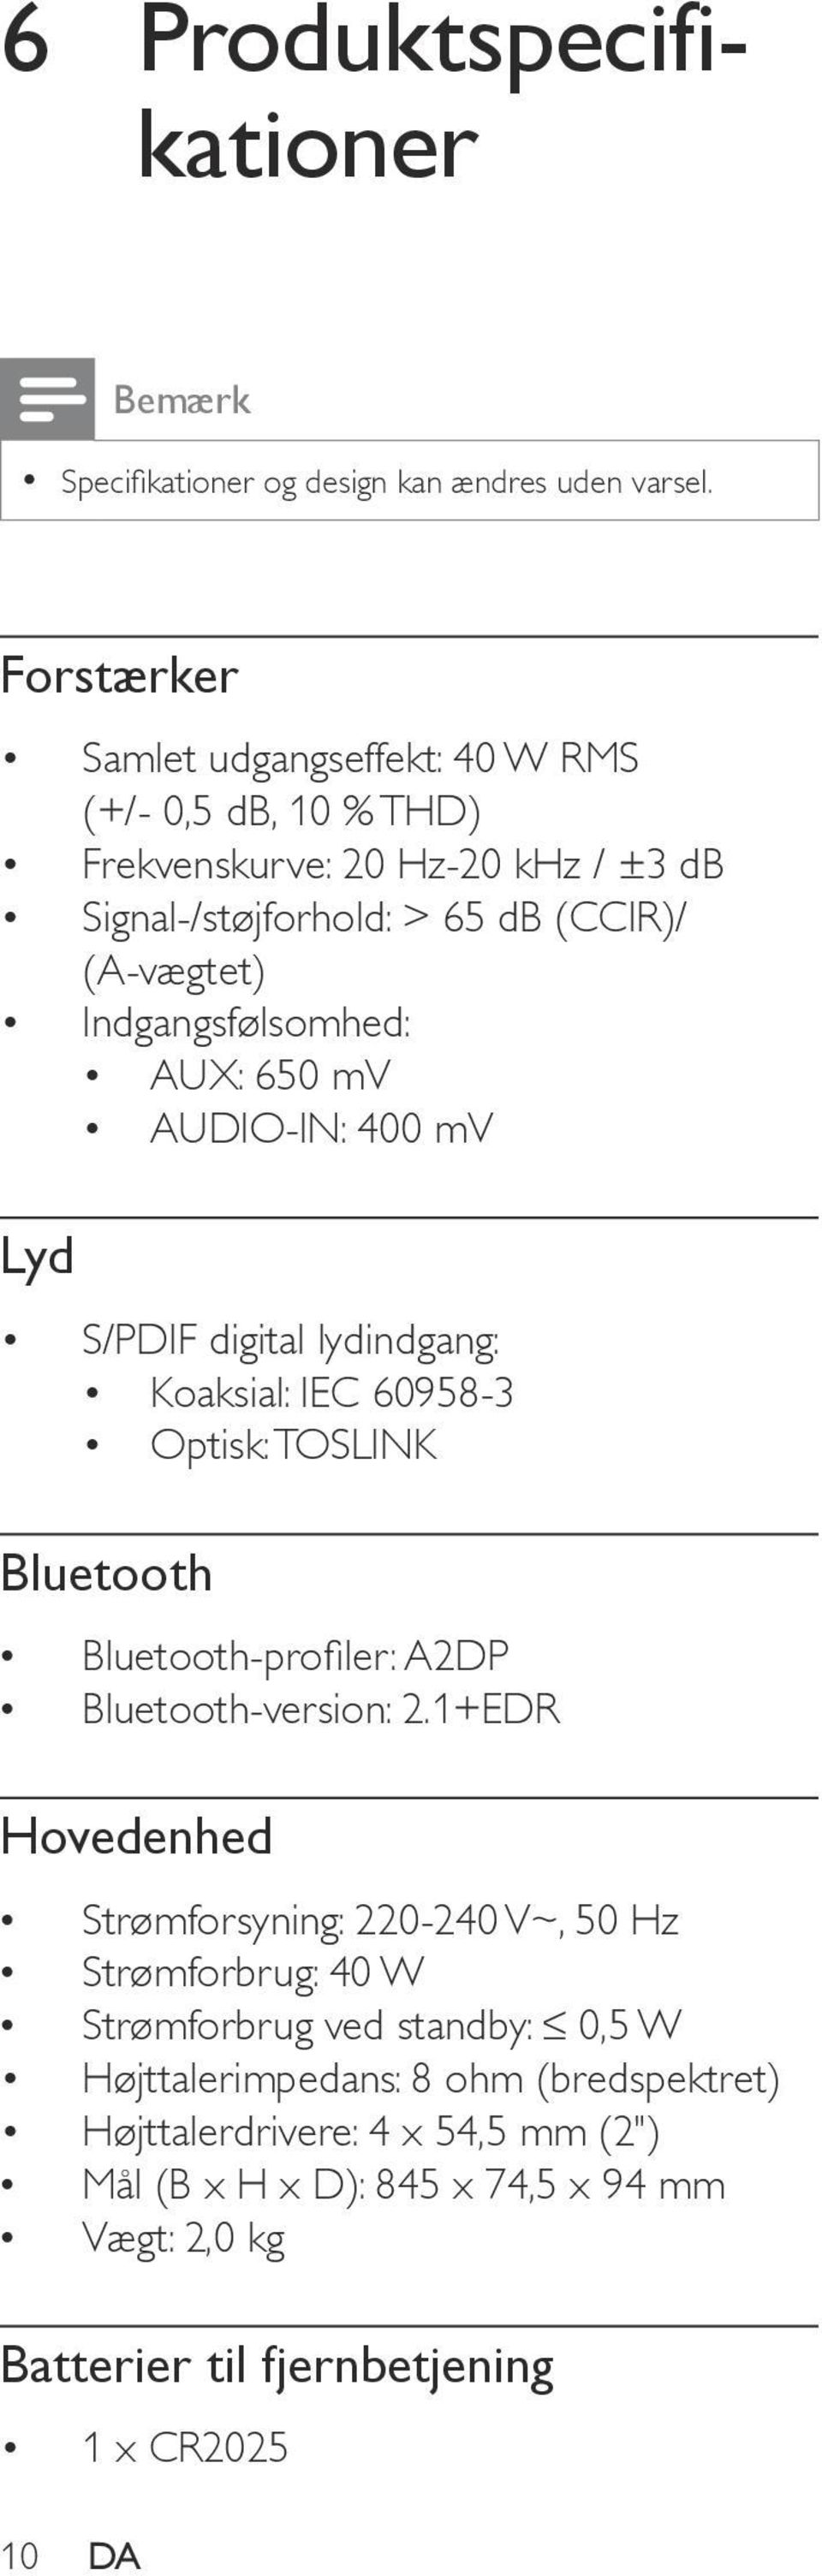 AUX: 650 mv AUDIO-IN: 400 mv Lyd S/PDIF digital lydindgang: Koaksial: IEC 60958-3 Optisk: TOSLINK Bluetooth Bluetooth-profiler: A2DP Bluetooth-version: 2.